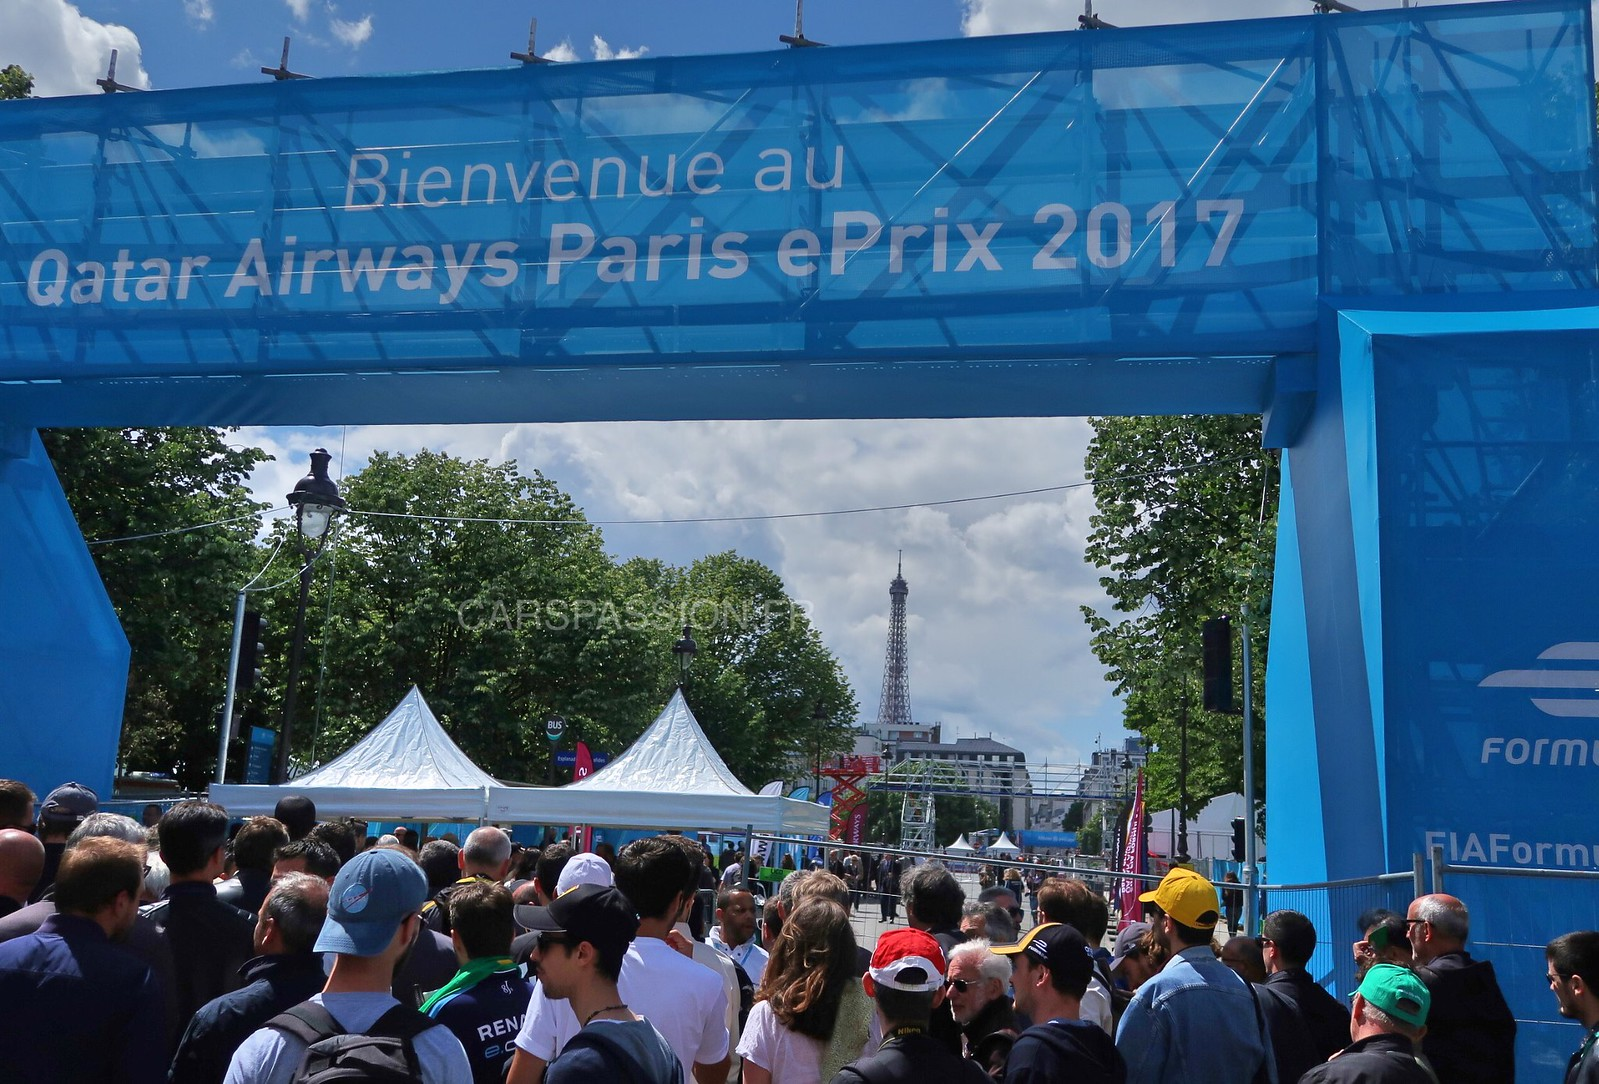 Grand Prix E Paris 2017